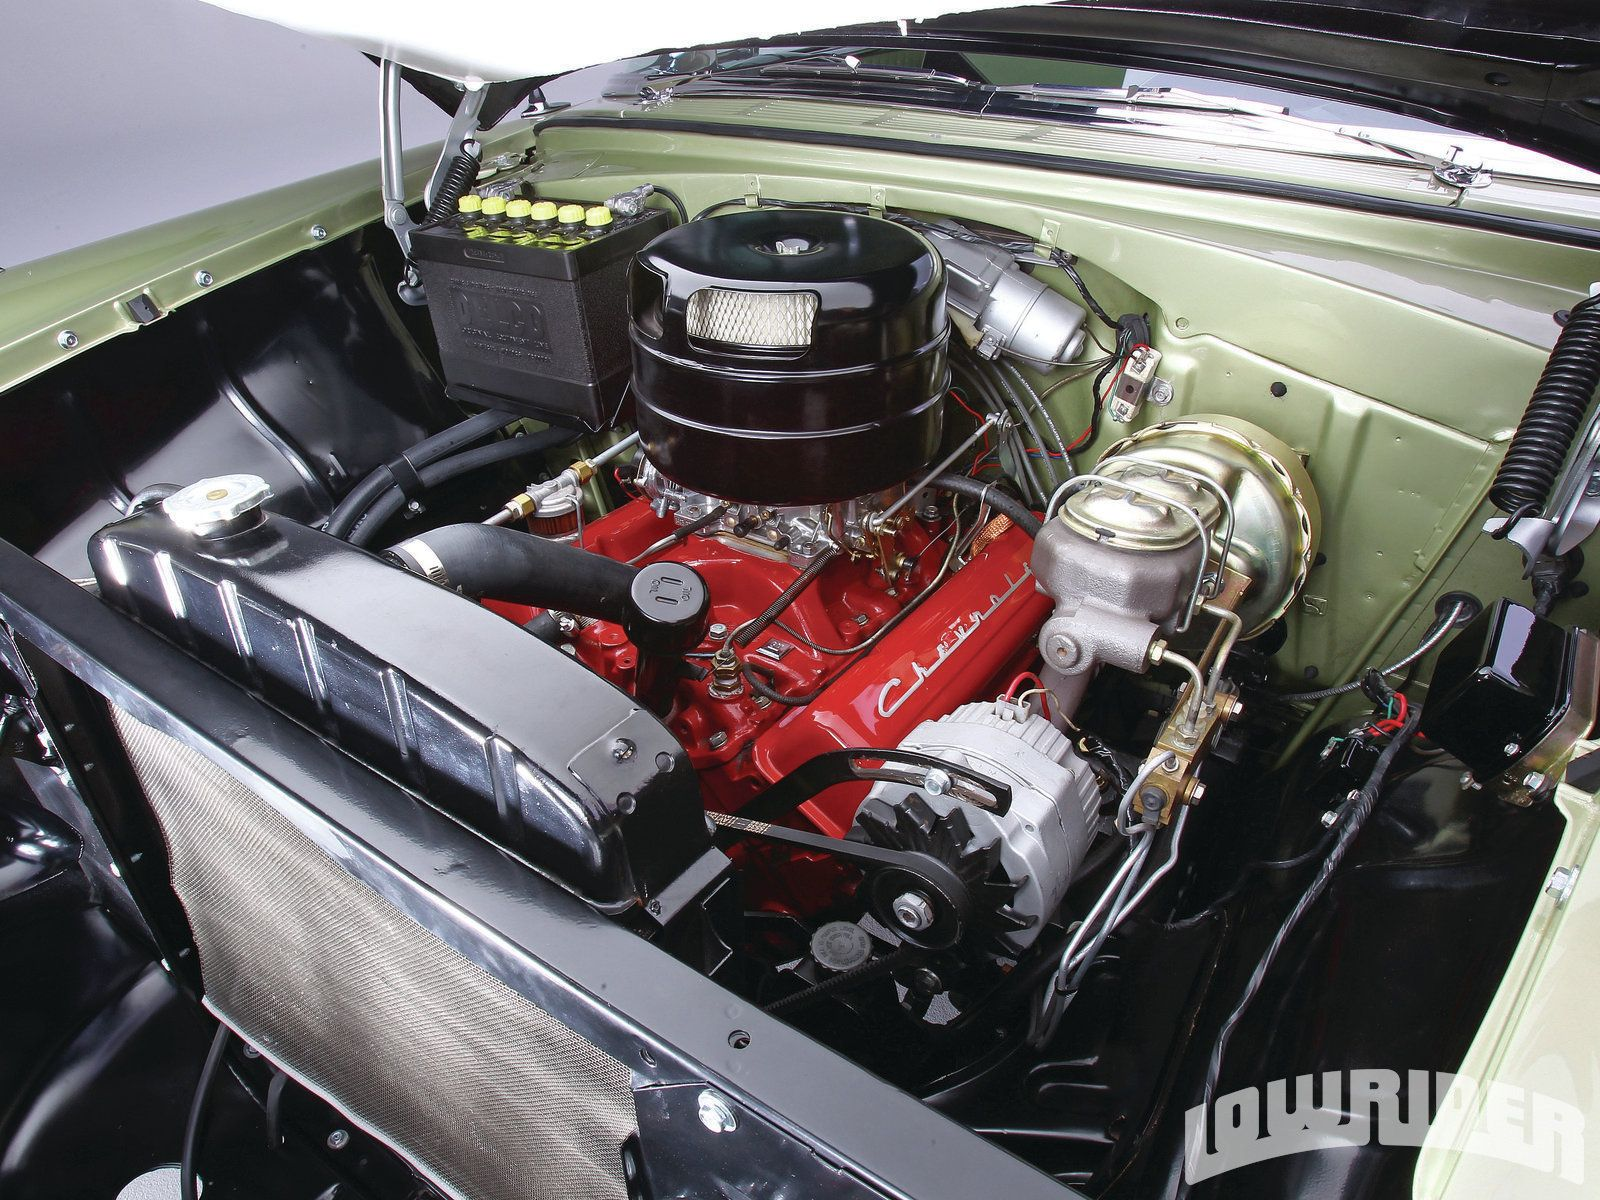 1956 chevrolet bel air convertible for sale - 1956 Chevrolet Bel Air Engine Bay